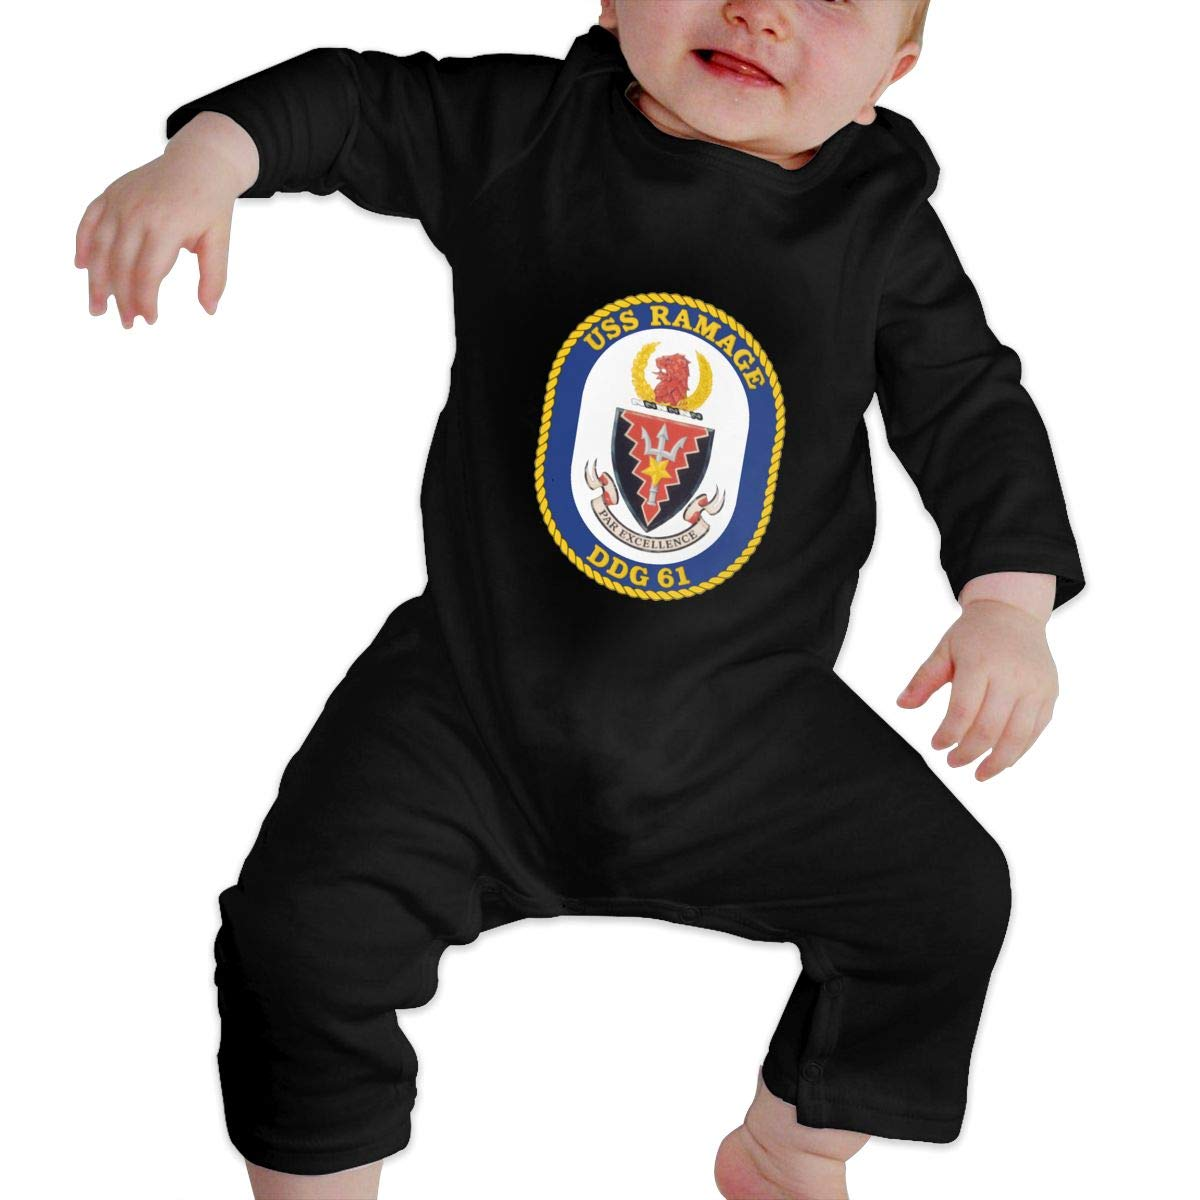 USS Ramage DDG-61 Guided Missile Destroyer Baby Long Sleeve Bodysuit Cotton Romper